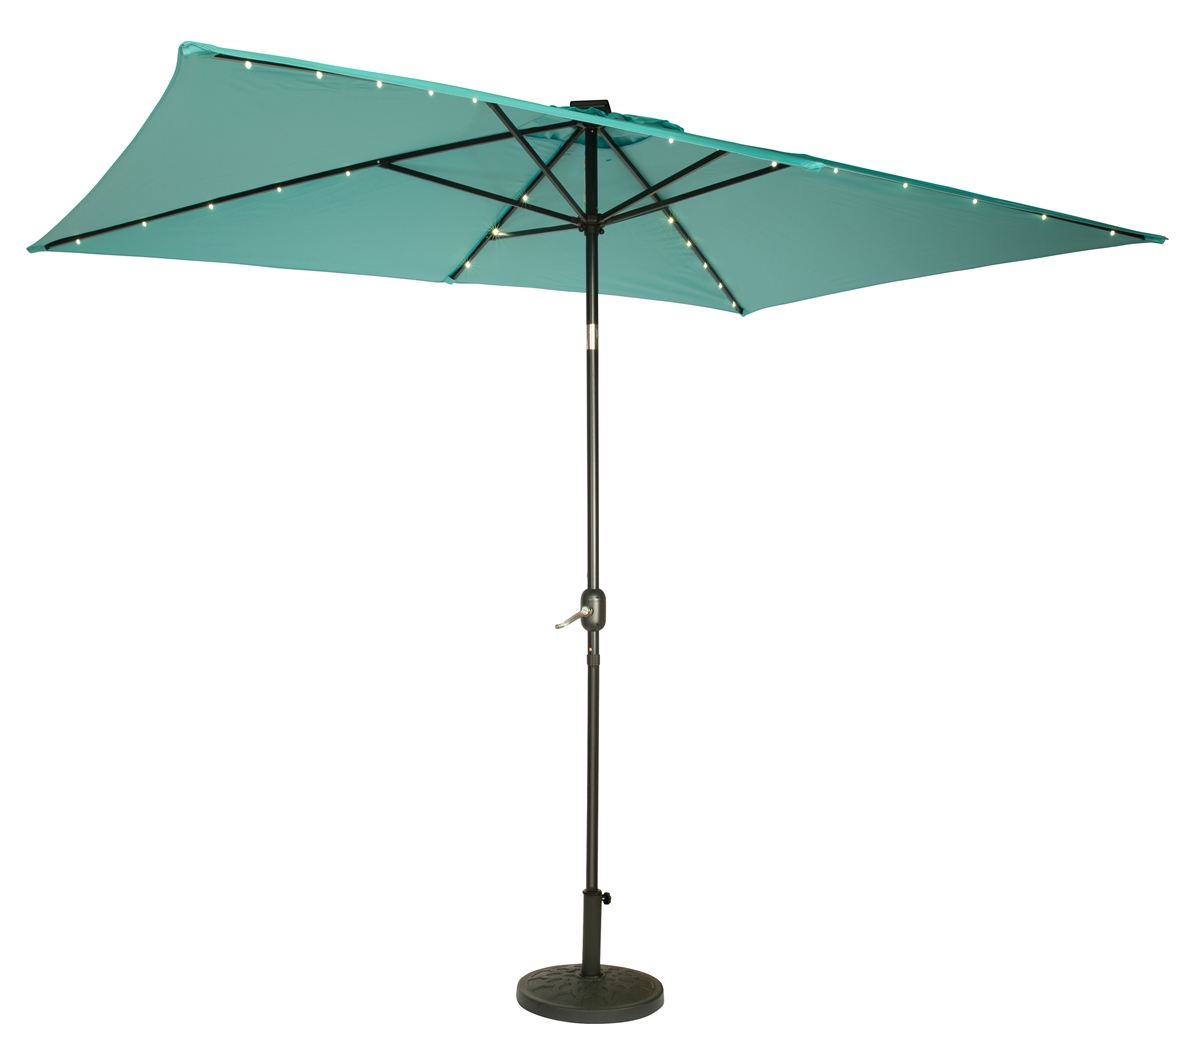 Charmant 10u0027 X 6.5u0027 Rectangular Solar Powered LED Lighted Patio Umbrella By  Trademark Innovations (Teal)